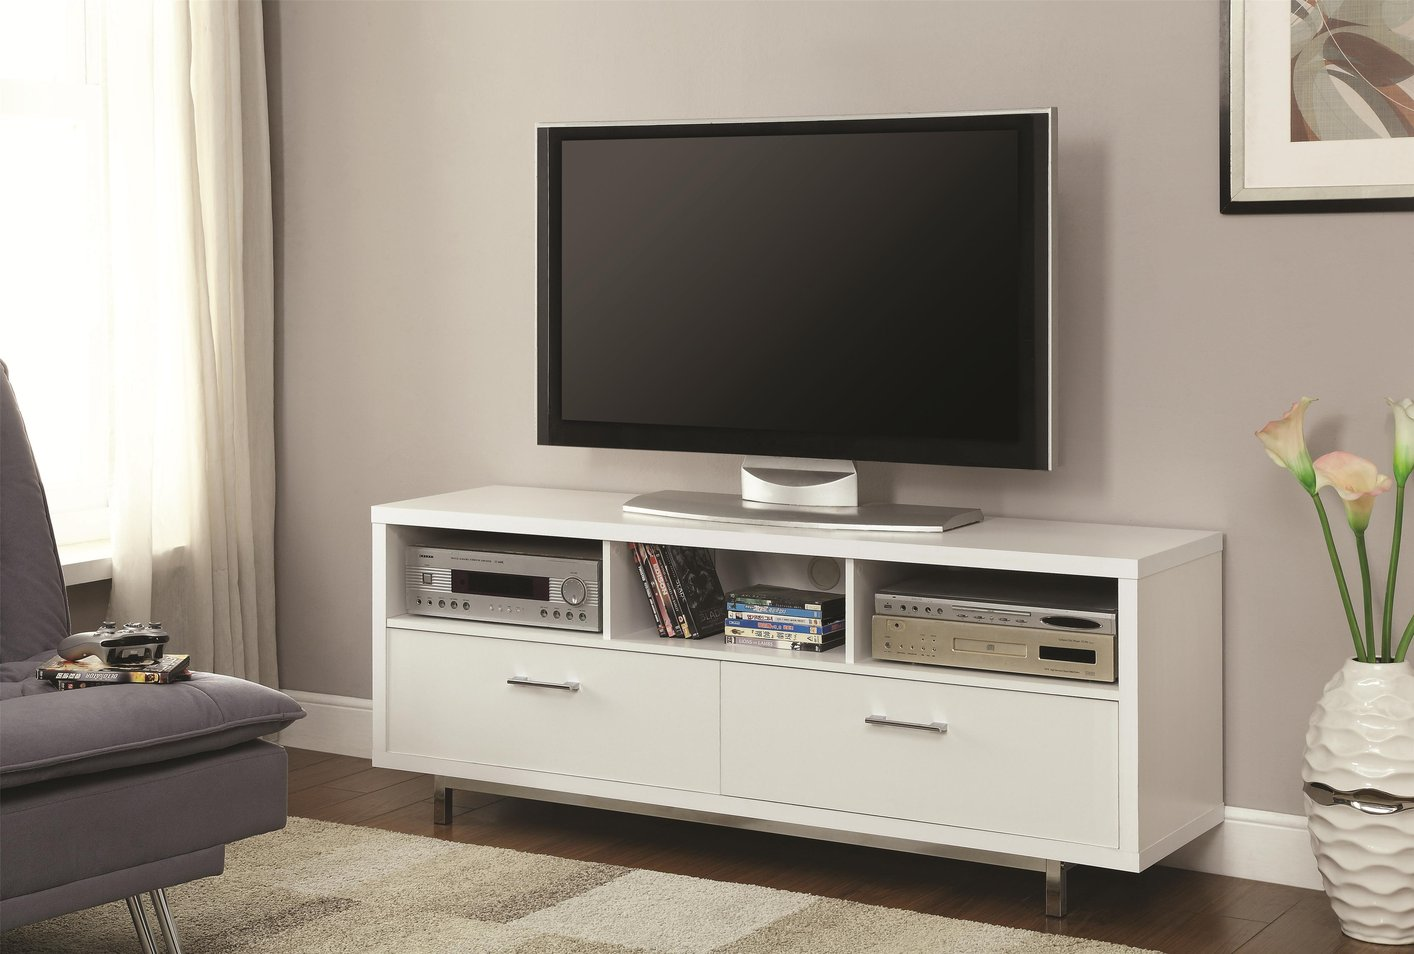 Coaster 701972 white metal tv stand steal a sofa White tv console